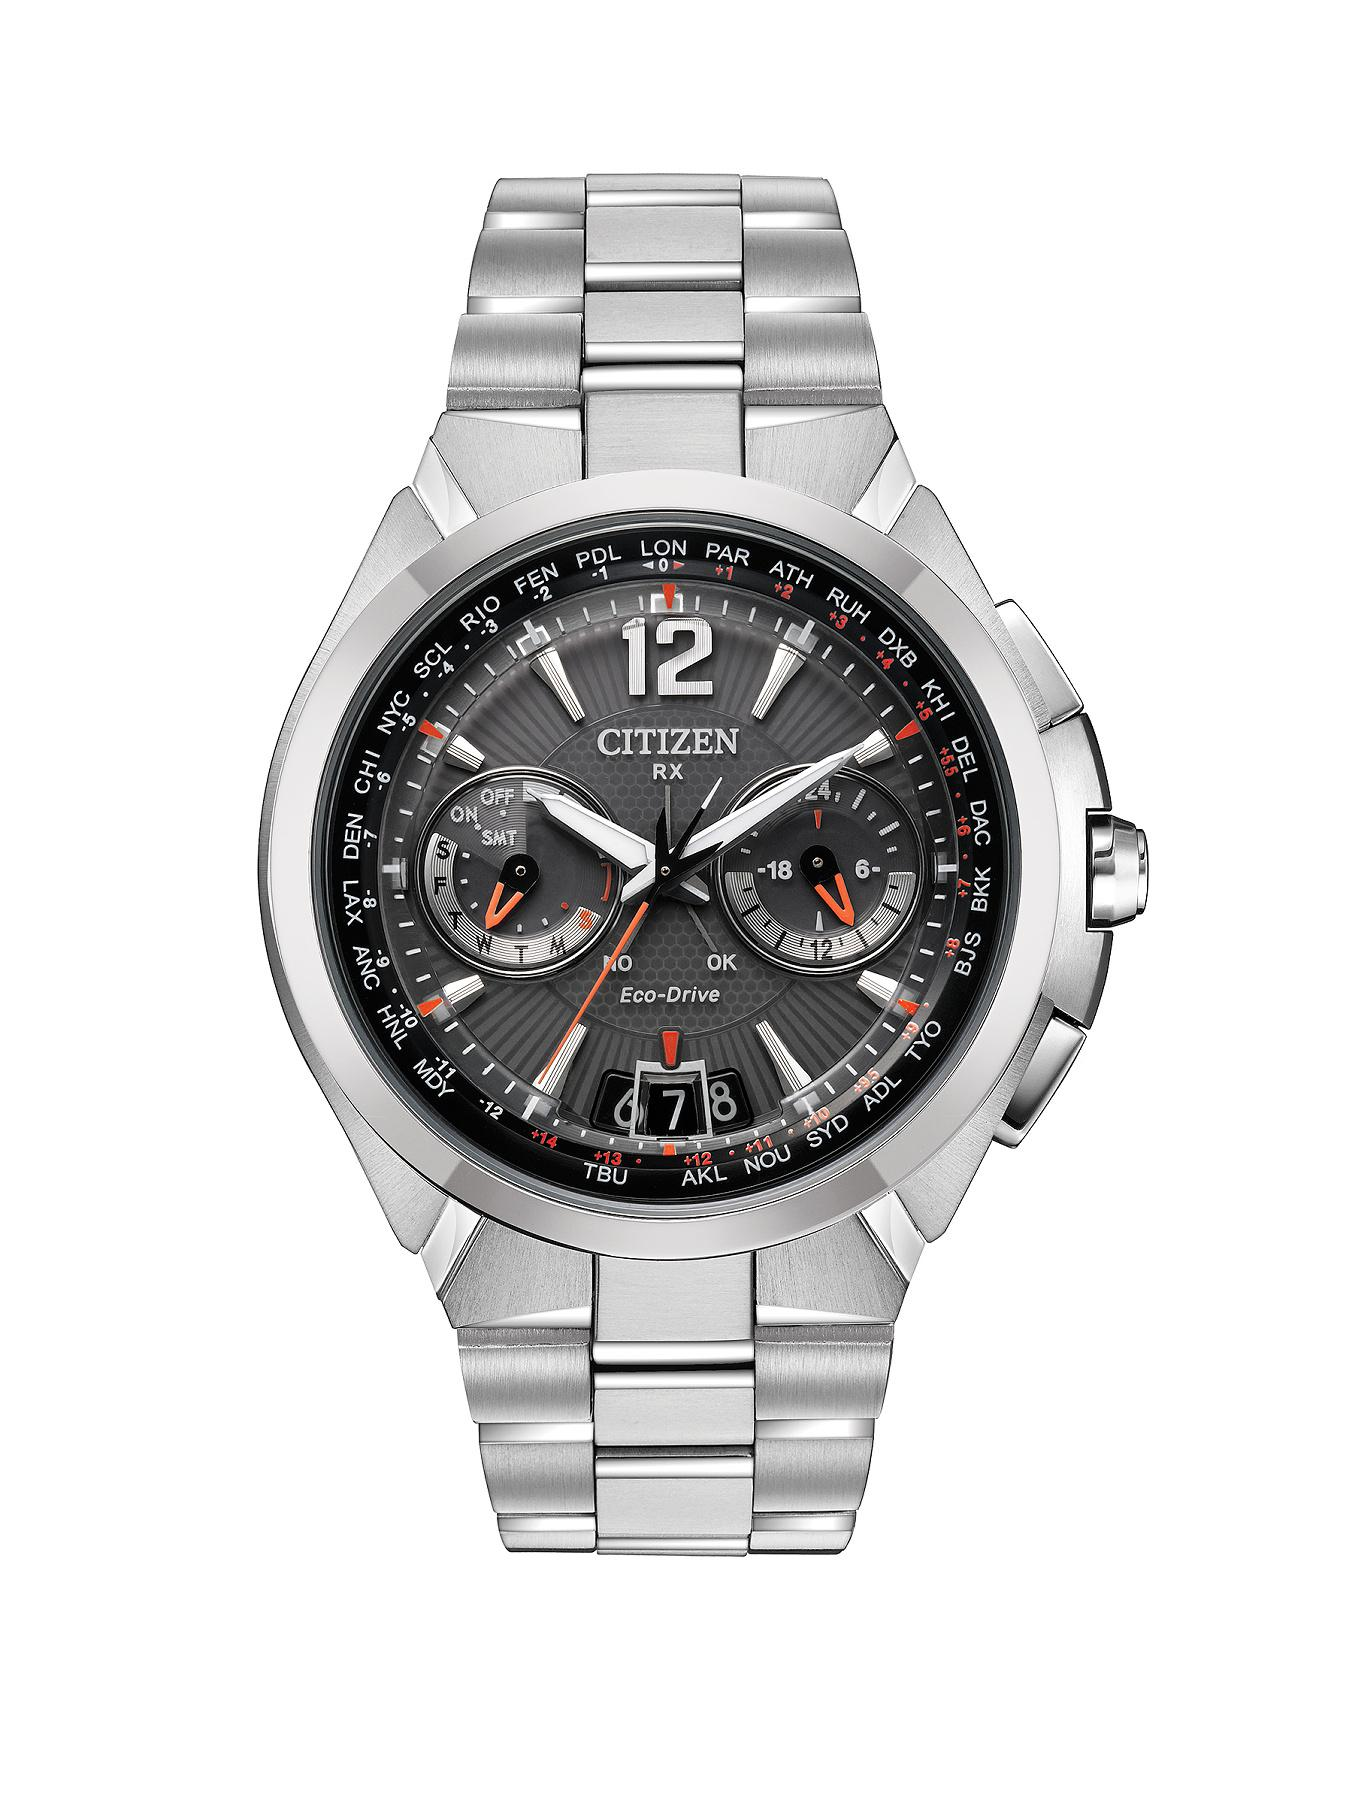 Citizen Eco-Drive Satellite Wave Satellite Timekeeping Bracelet Mens Watch